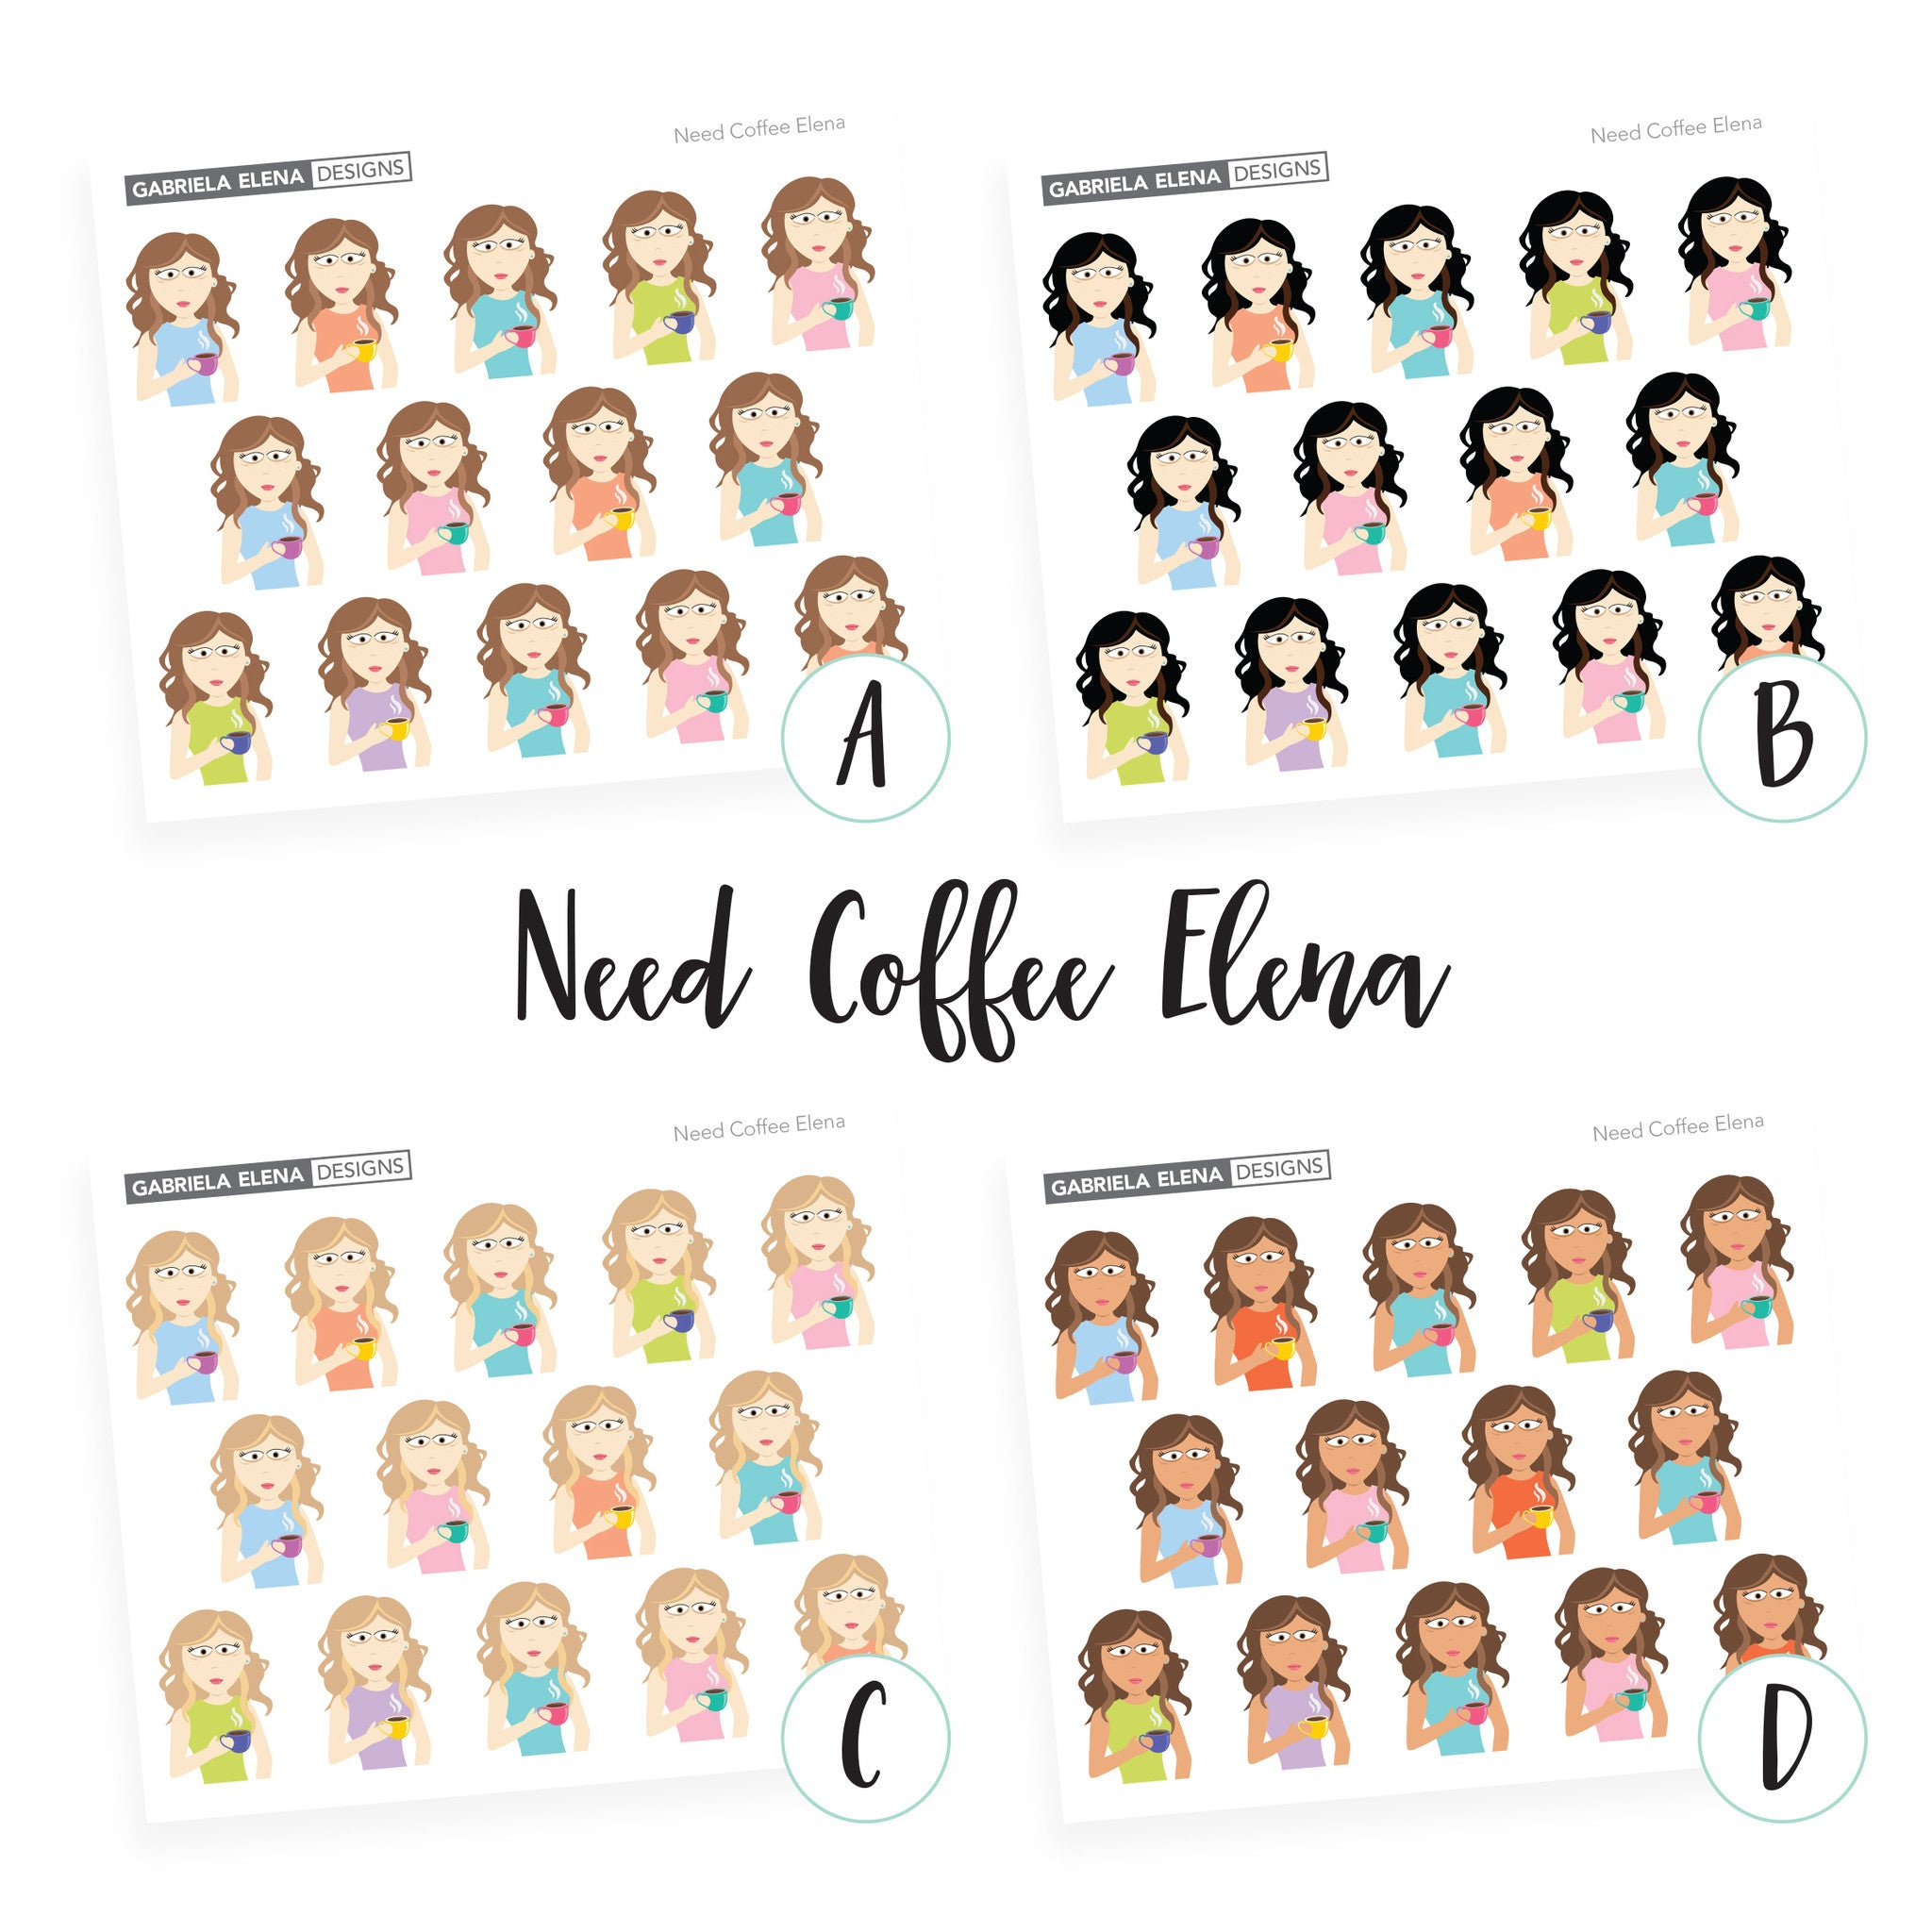 Elena / Need Coffee